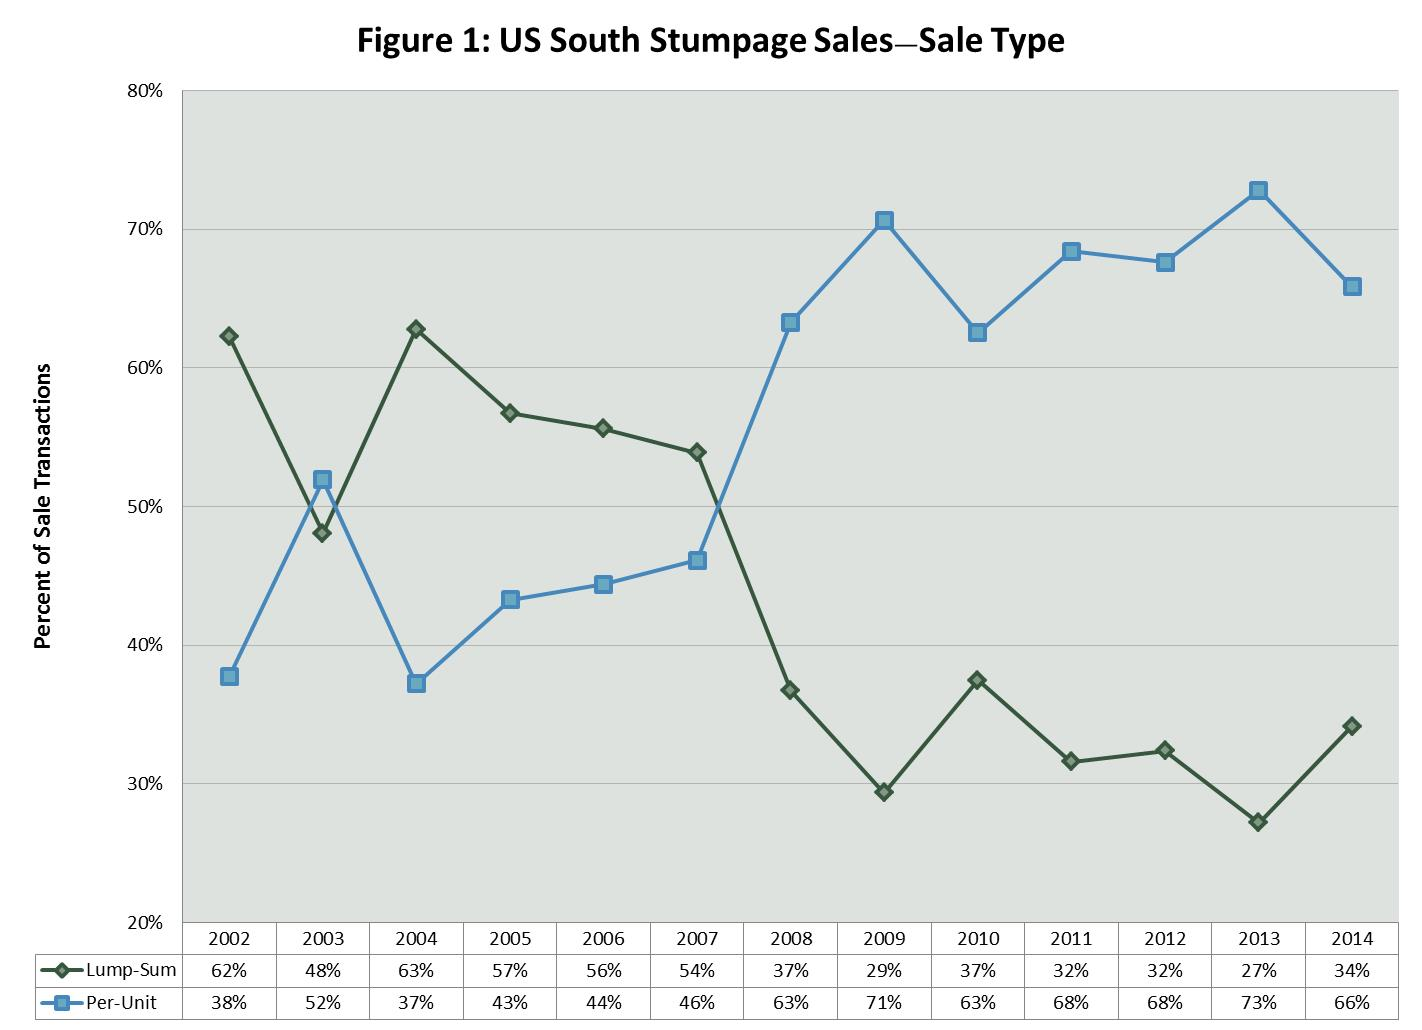 Stumpage Market Trends in the US South: Sale and Buyer Types